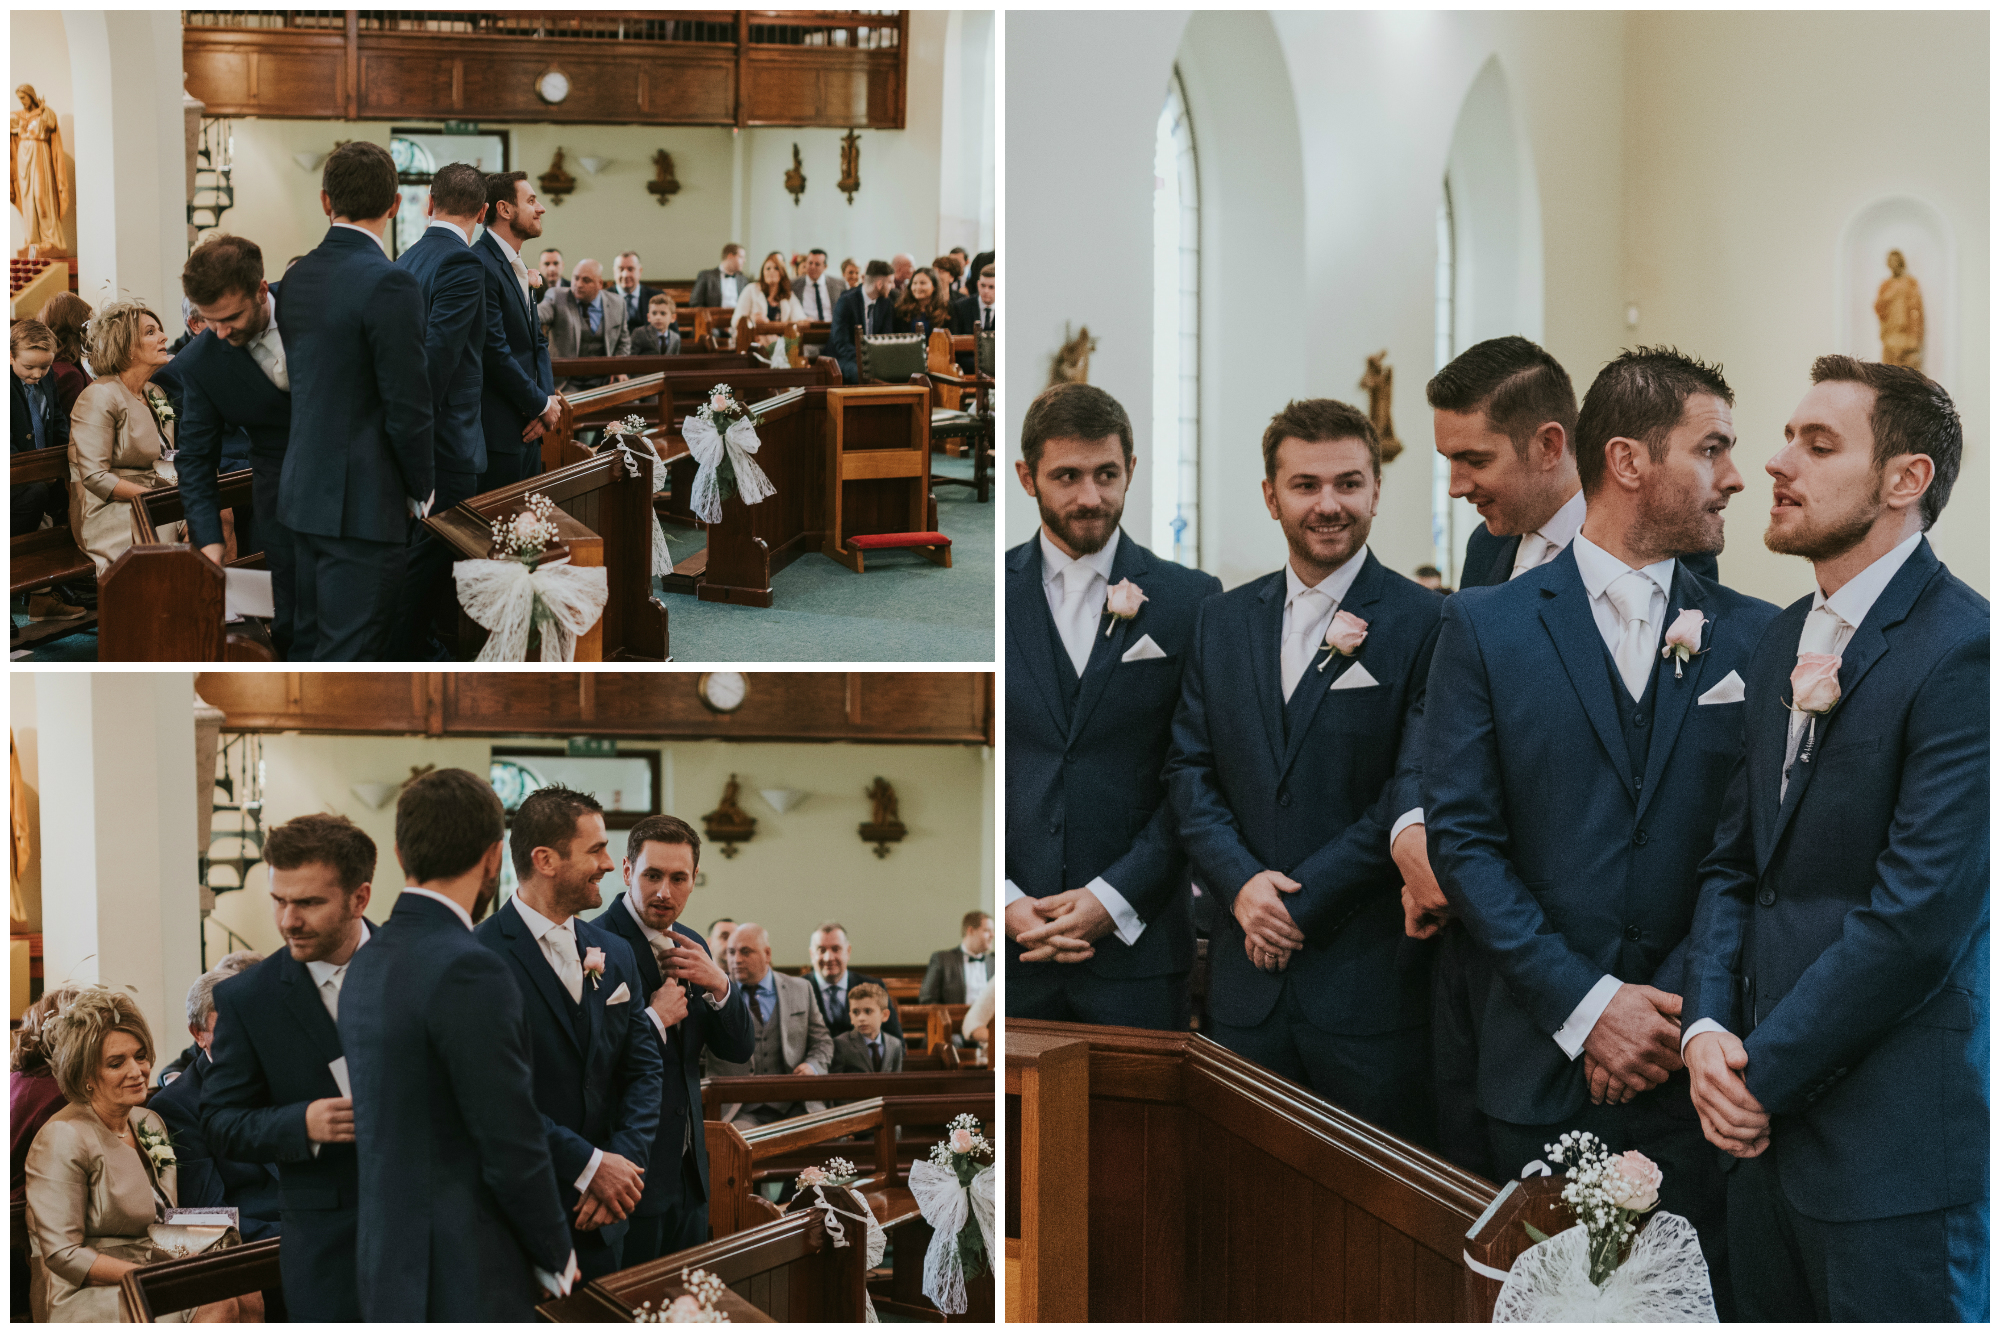 Tullyglass House Hotel Wedding ceremony groom groomsmen